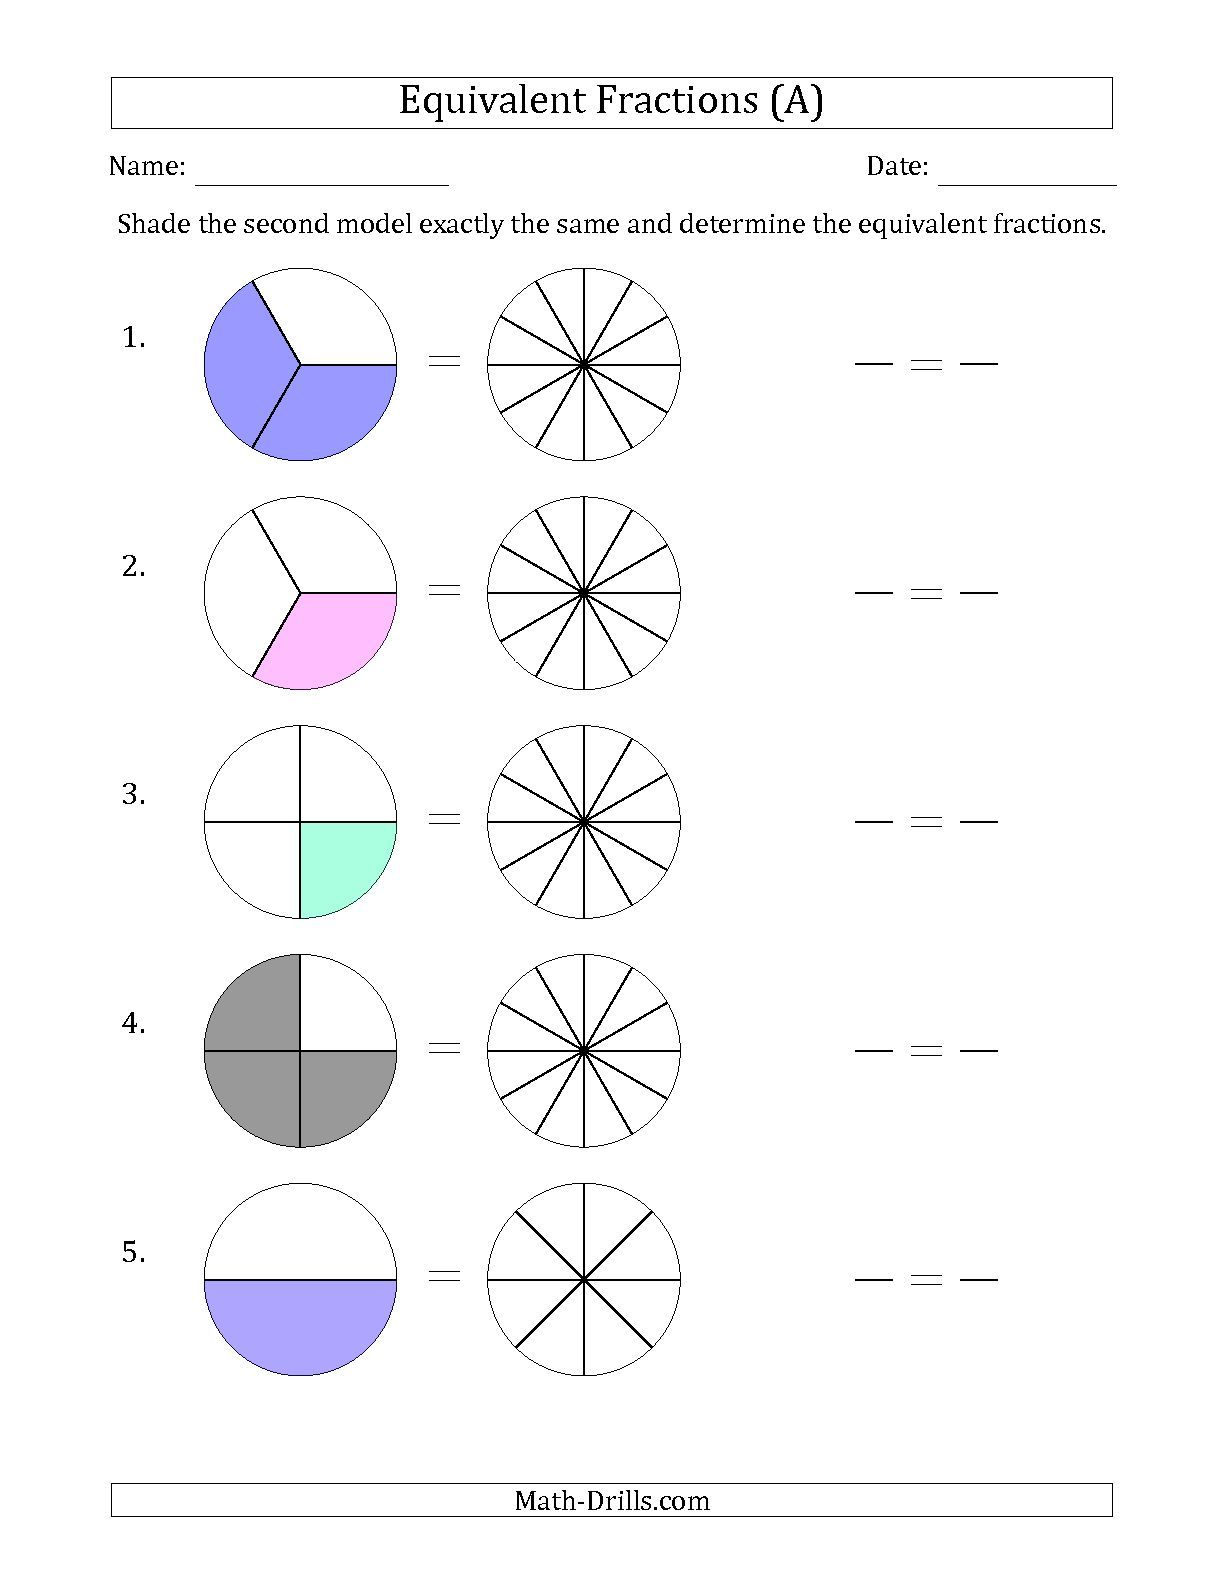 The Equivalent Fractions Models with the Simplified Fraction First